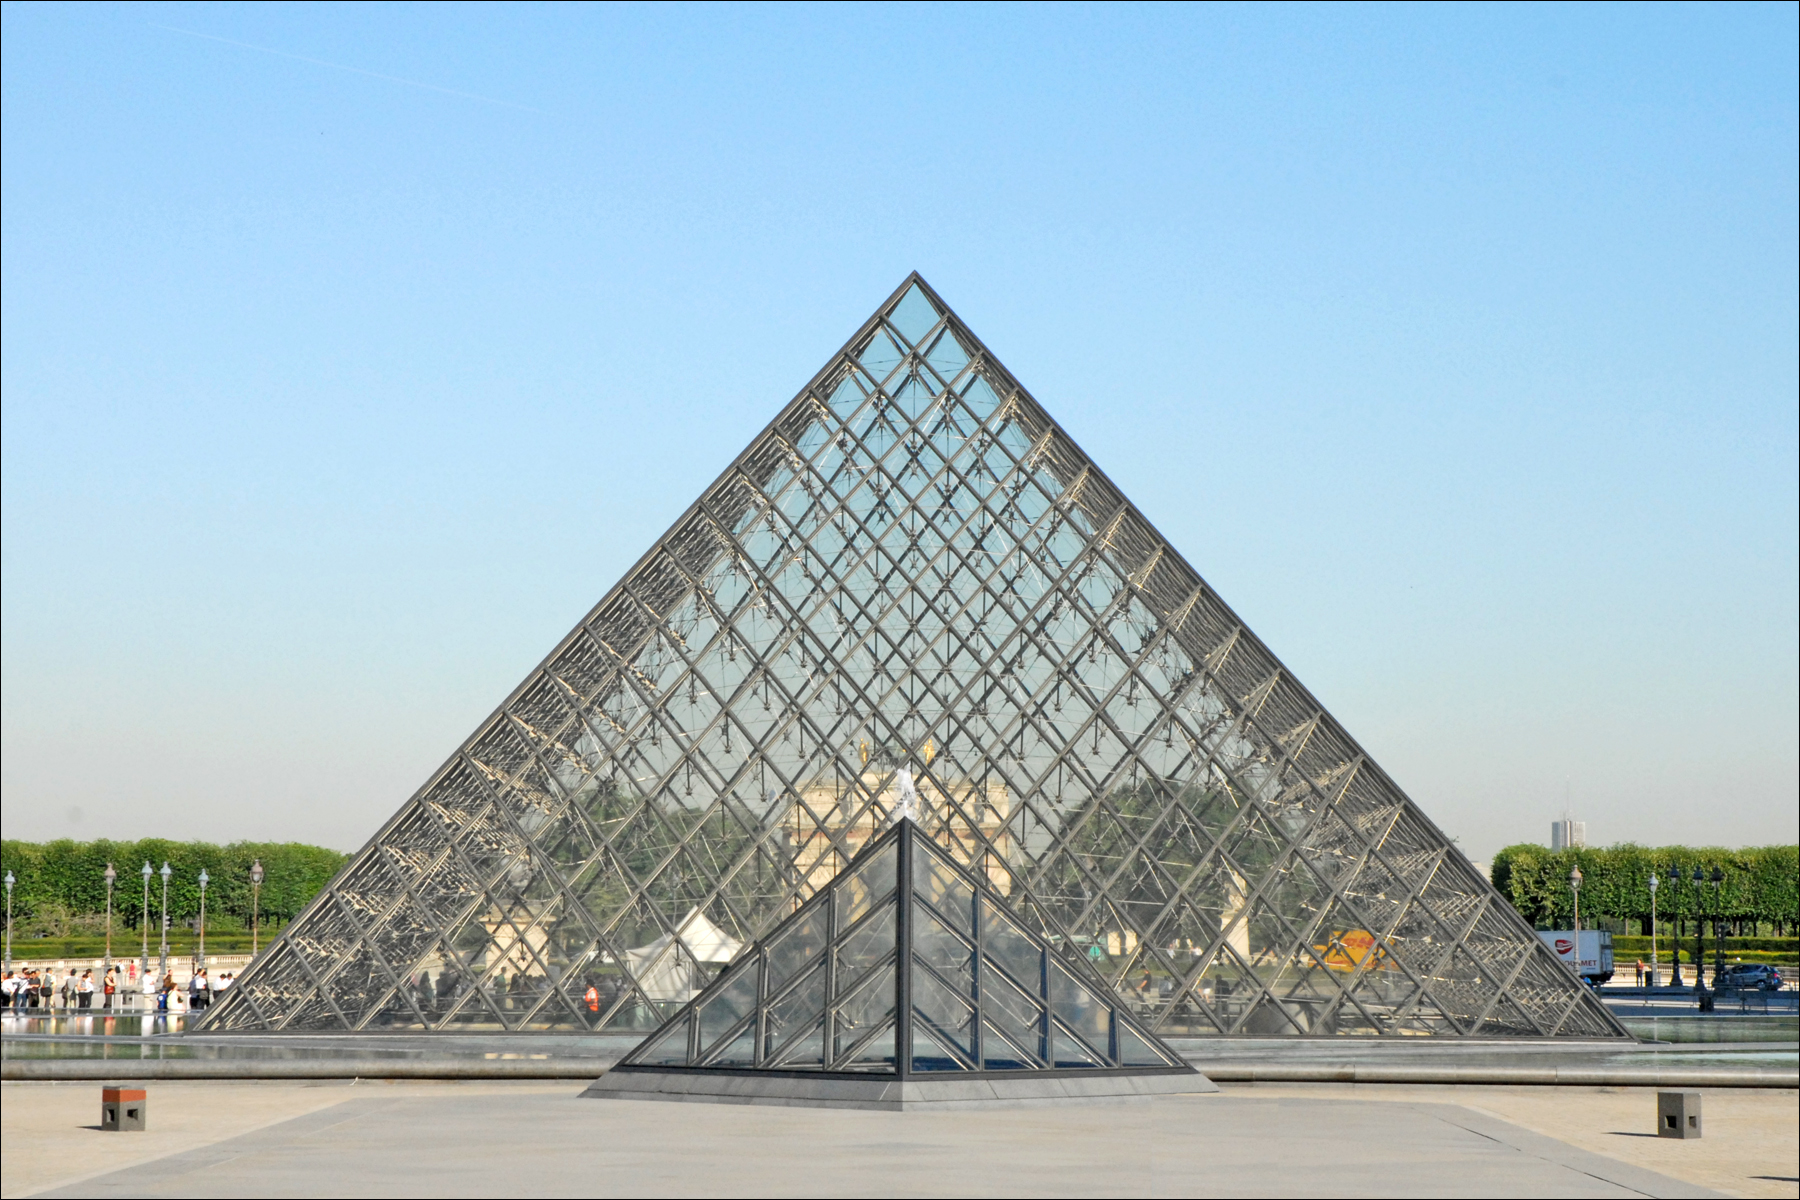 la pyramide du louvre flickr photo sharing. Black Bedroom Furniture Sets. Home Design Ideas